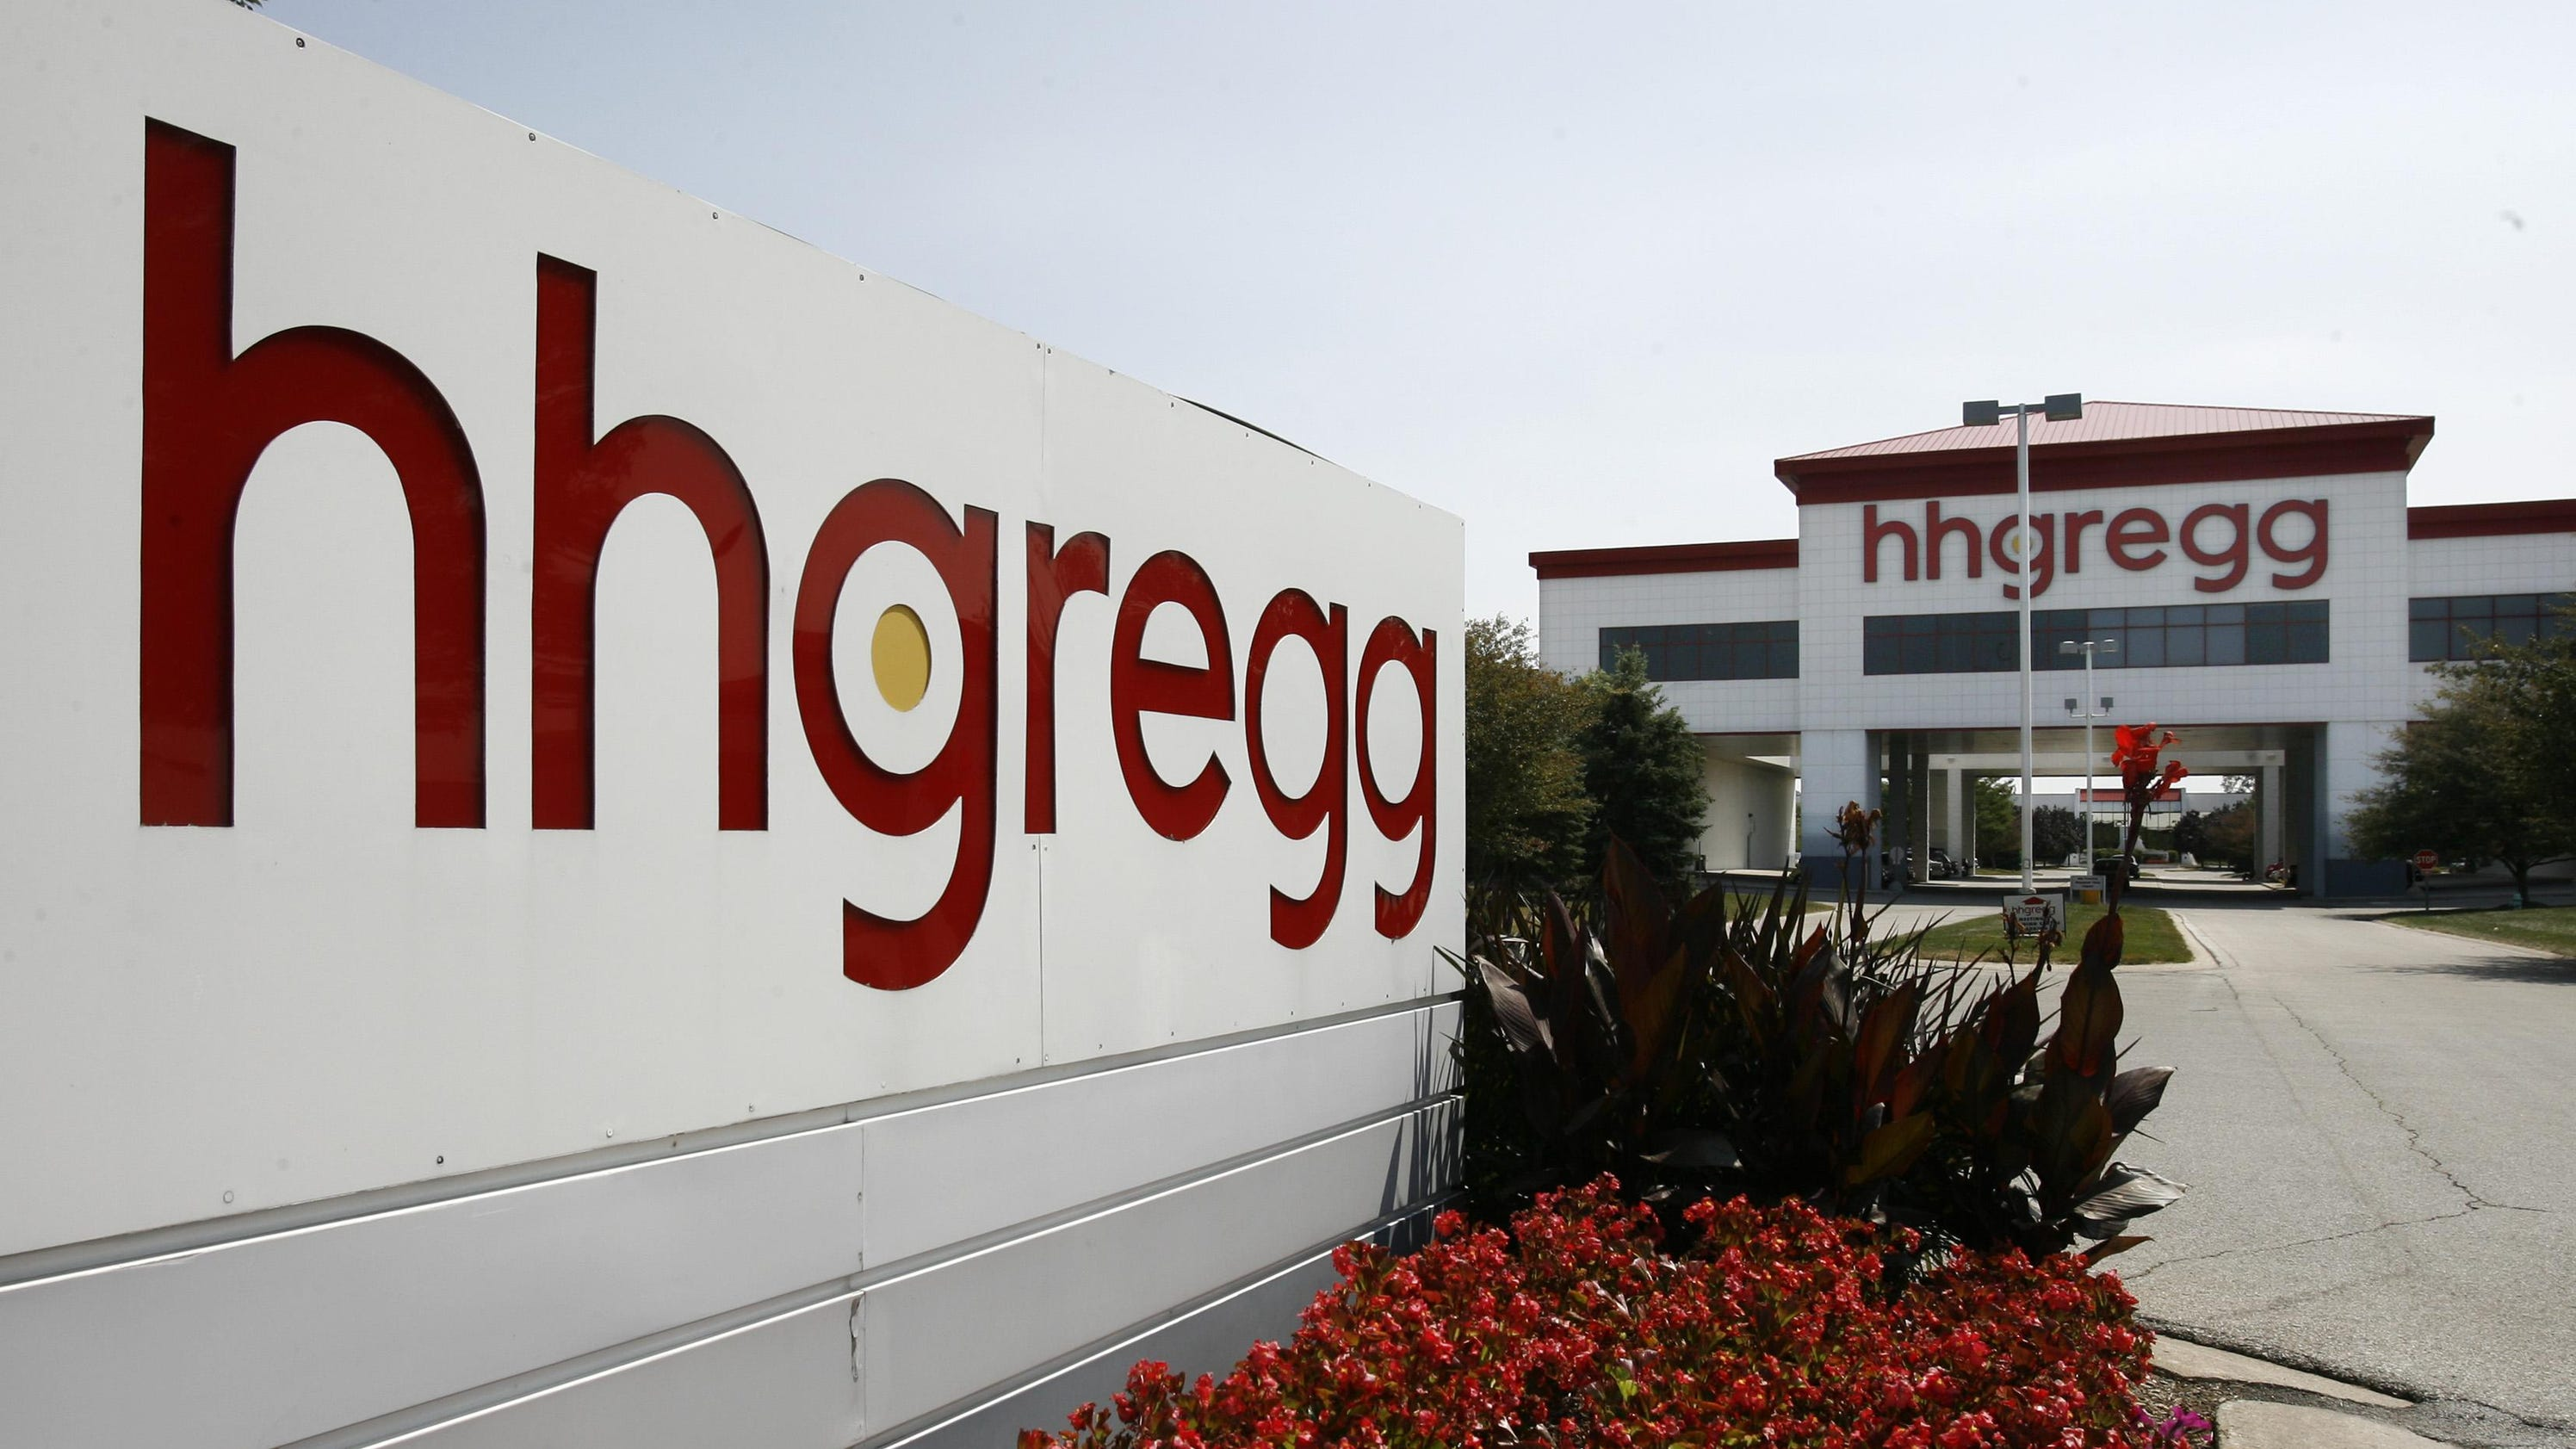 hhgregg to close all stores after failing to find a er